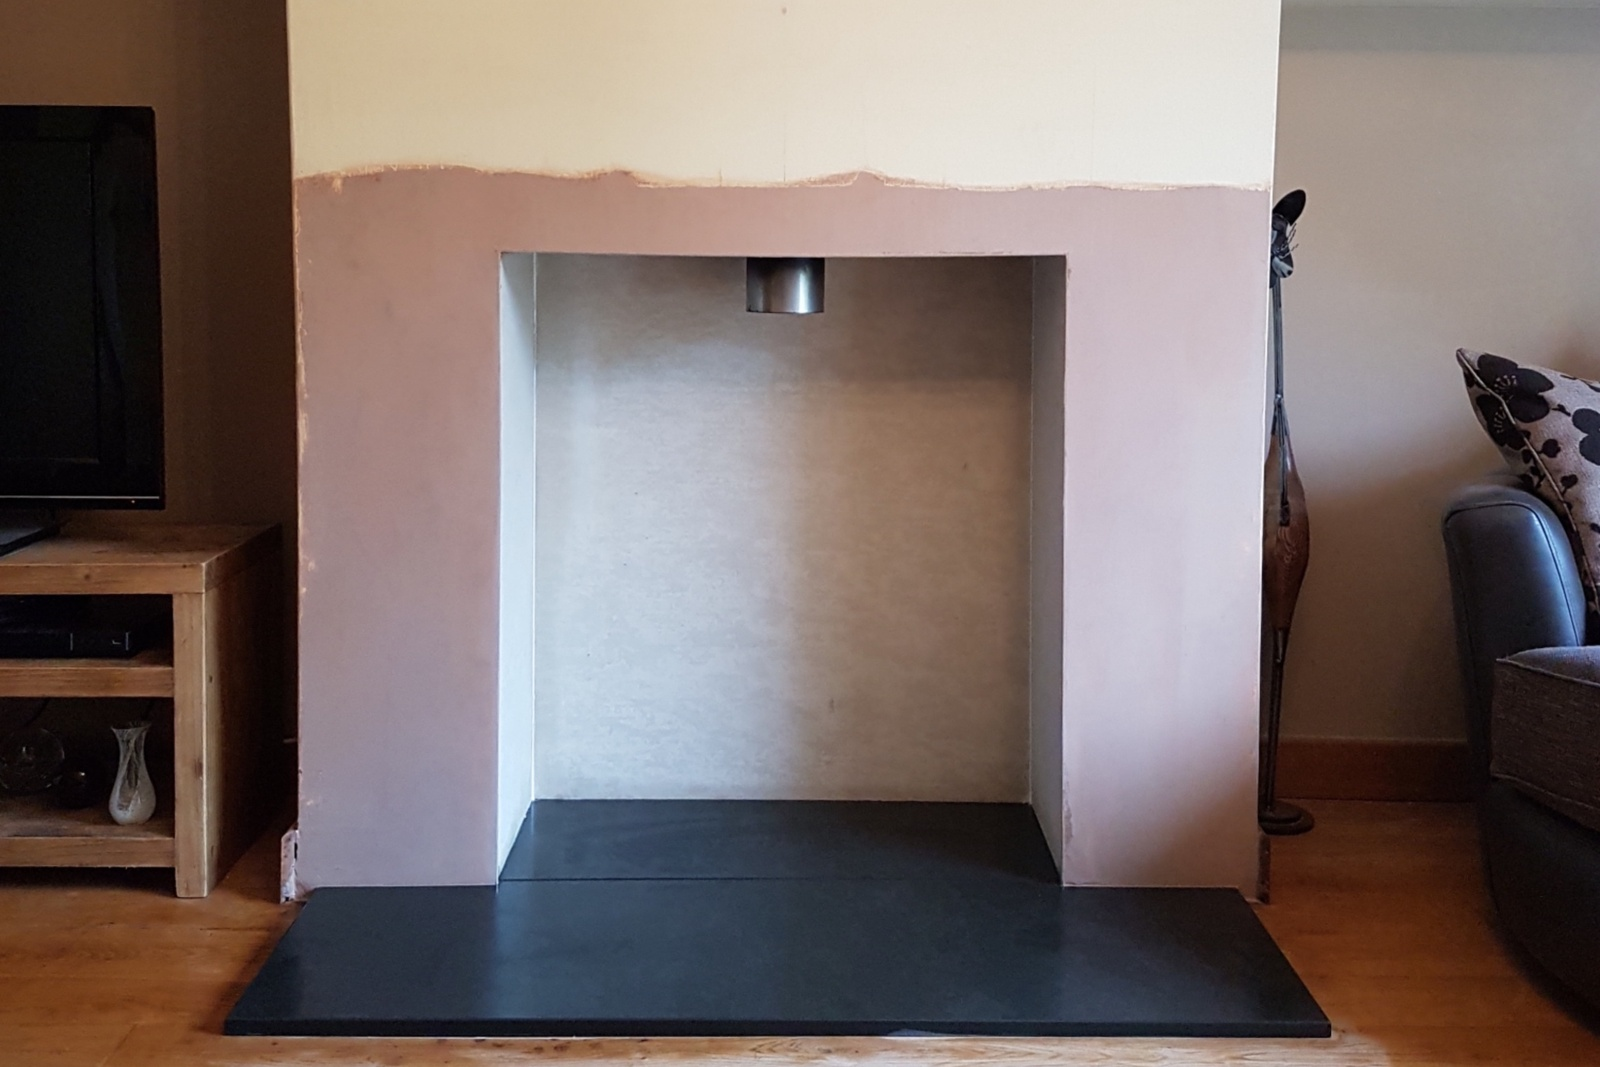 A new natural slate hearth was laid and the chamber lined with heatproof board